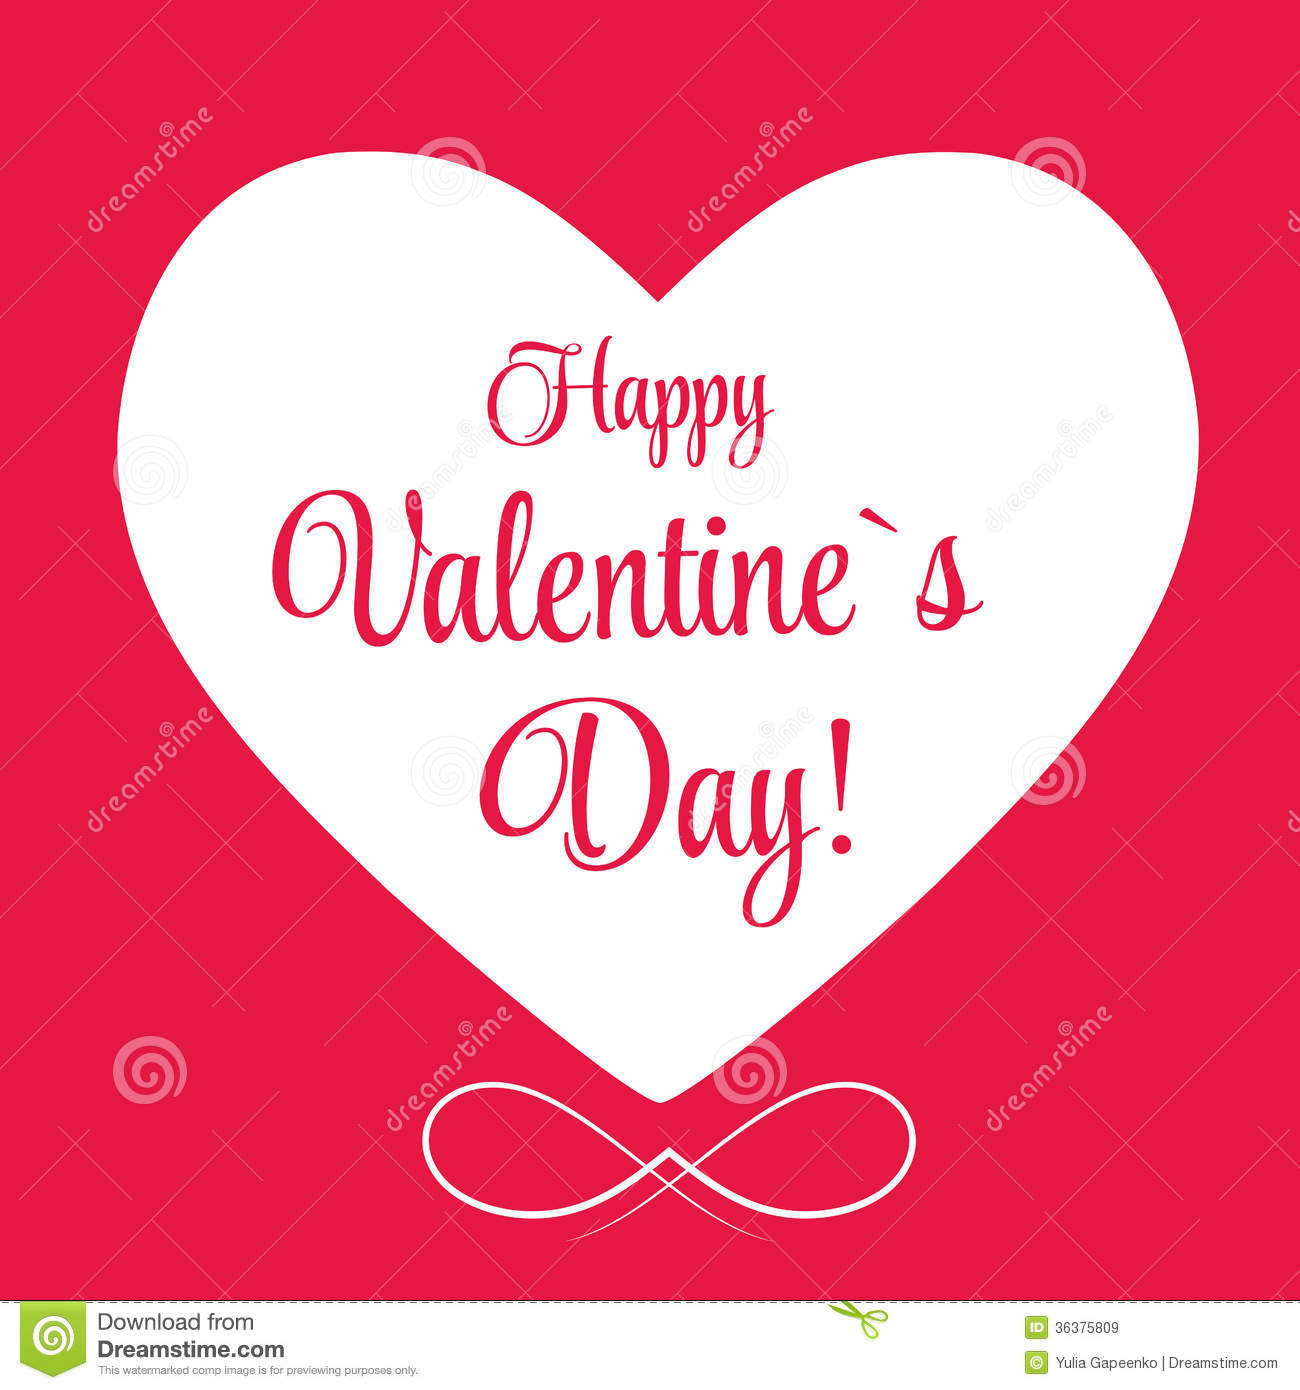 St Valentine Quotes Like Success